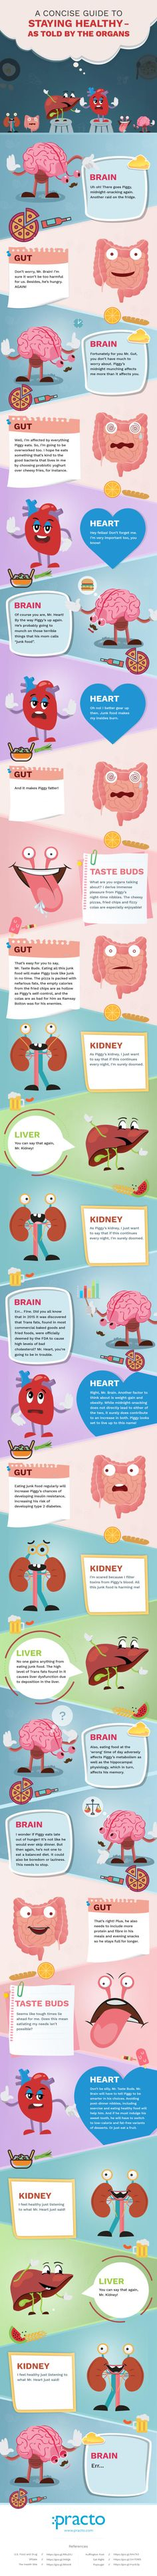 A Concise Guide to Staying Healthy – as Told by the Organs #Infographic #Health